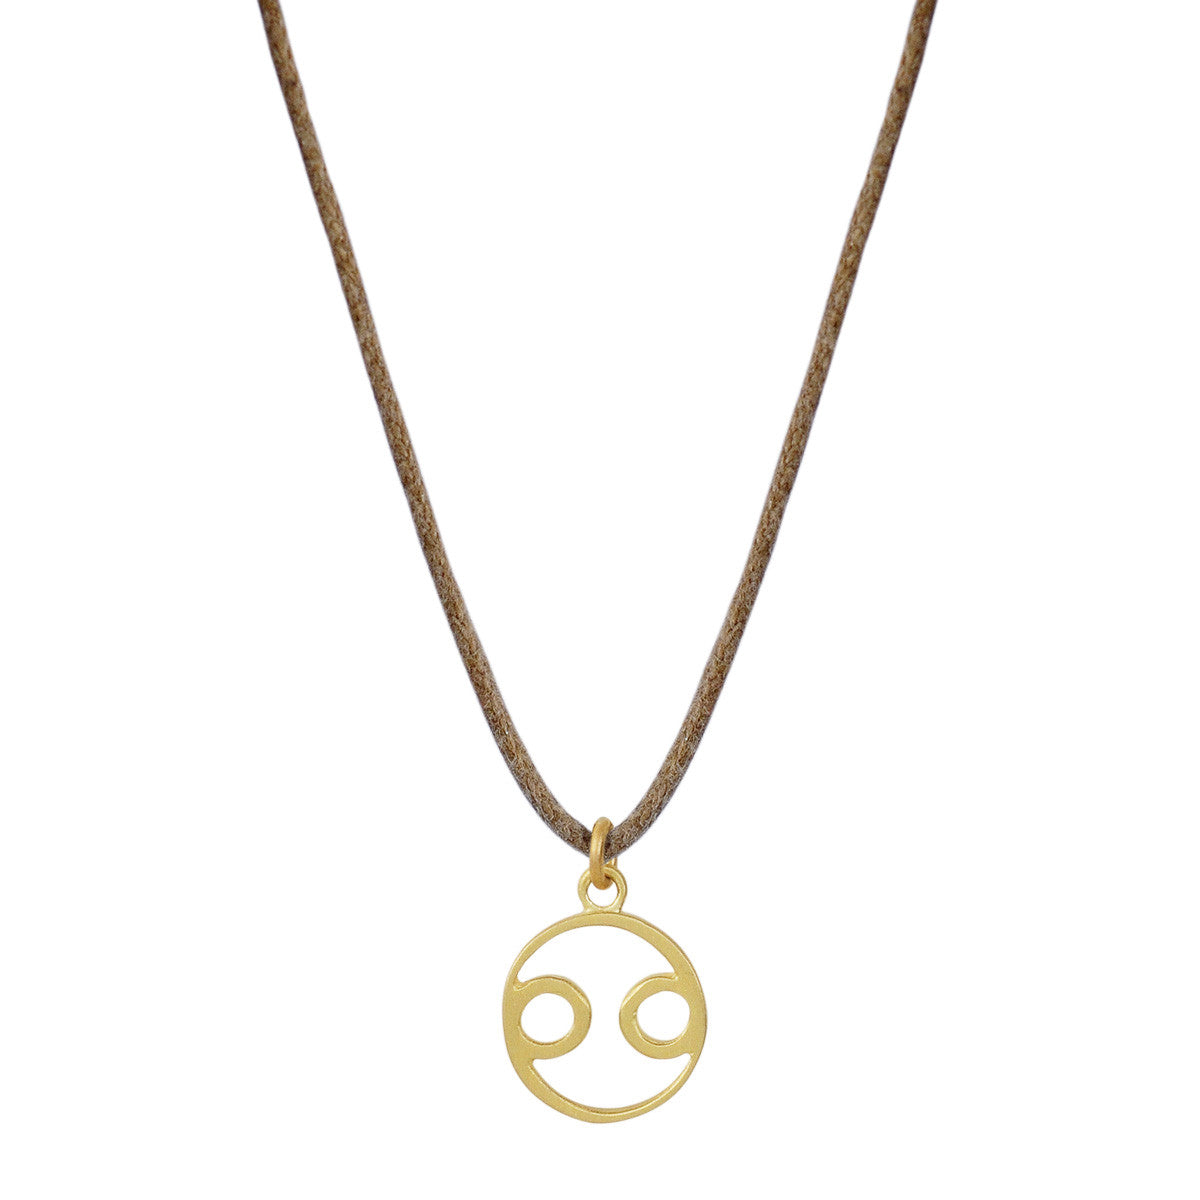 18K Gold Cancer Symbol Pendant on Cord